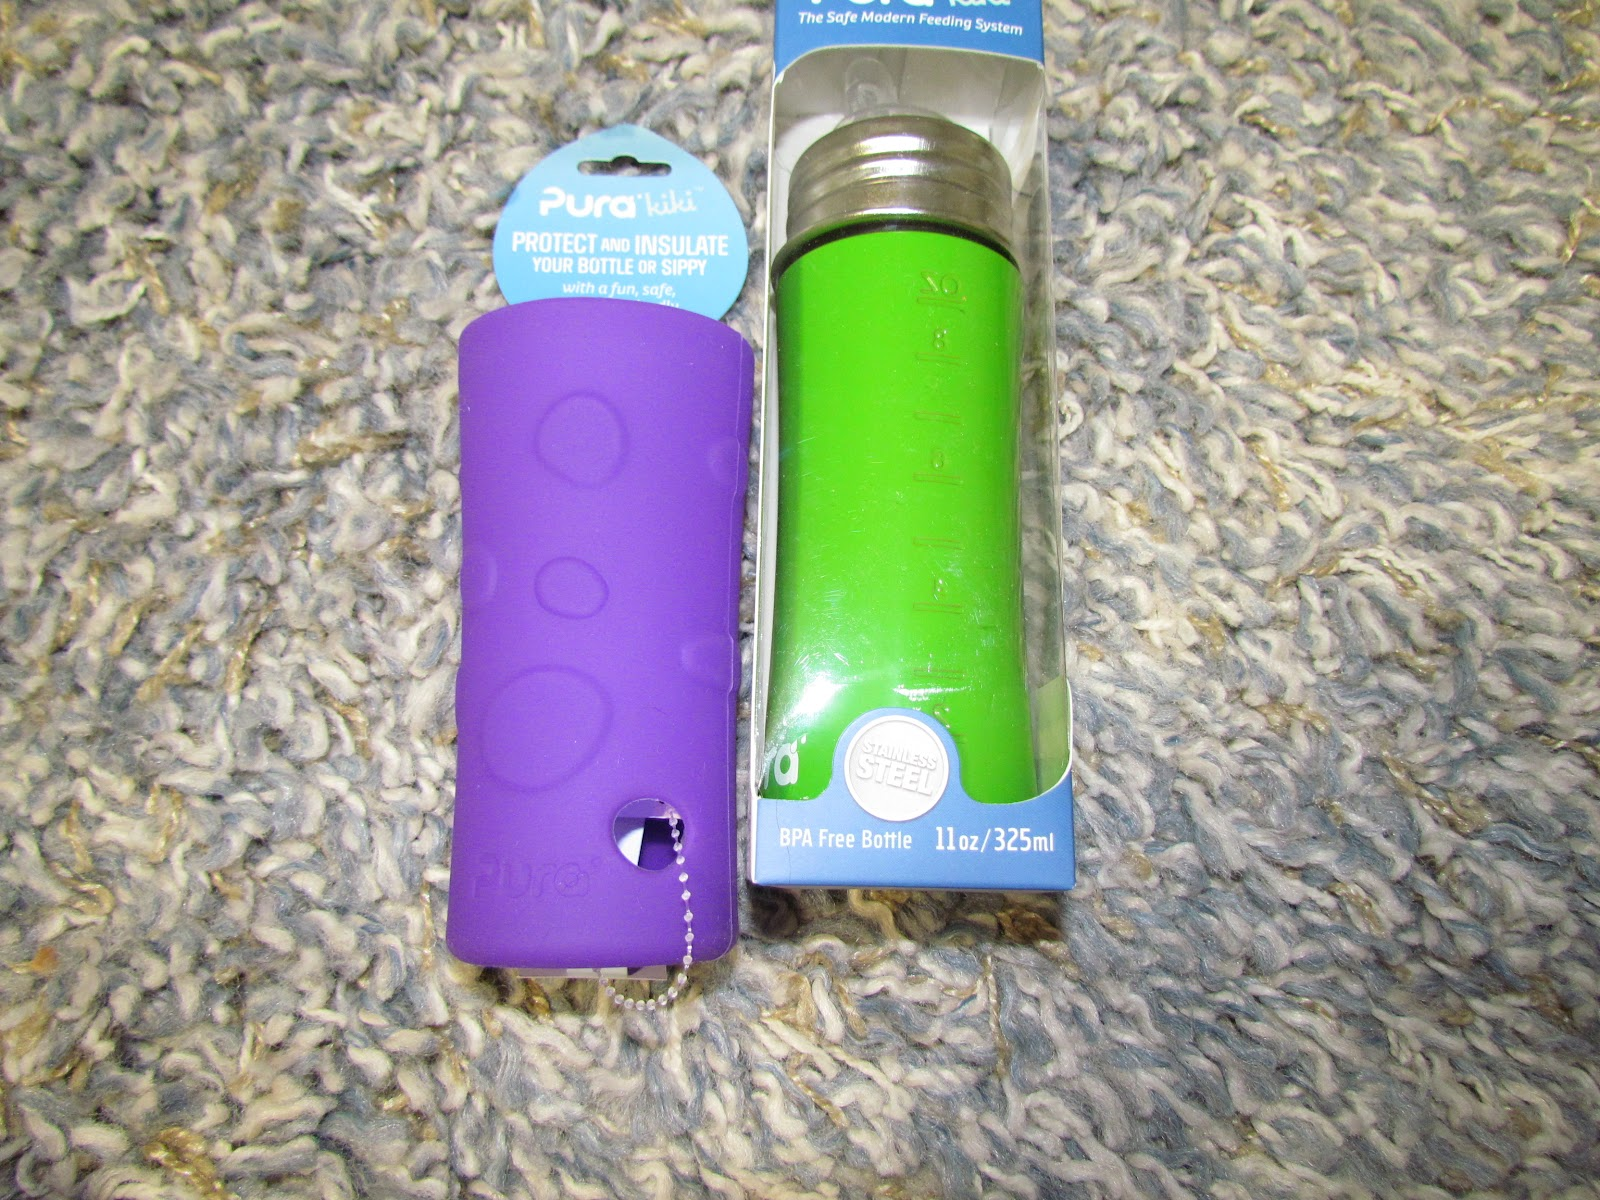 Pura 0.6L Stainless Steel Water Bottle with Stainless Loop Cap